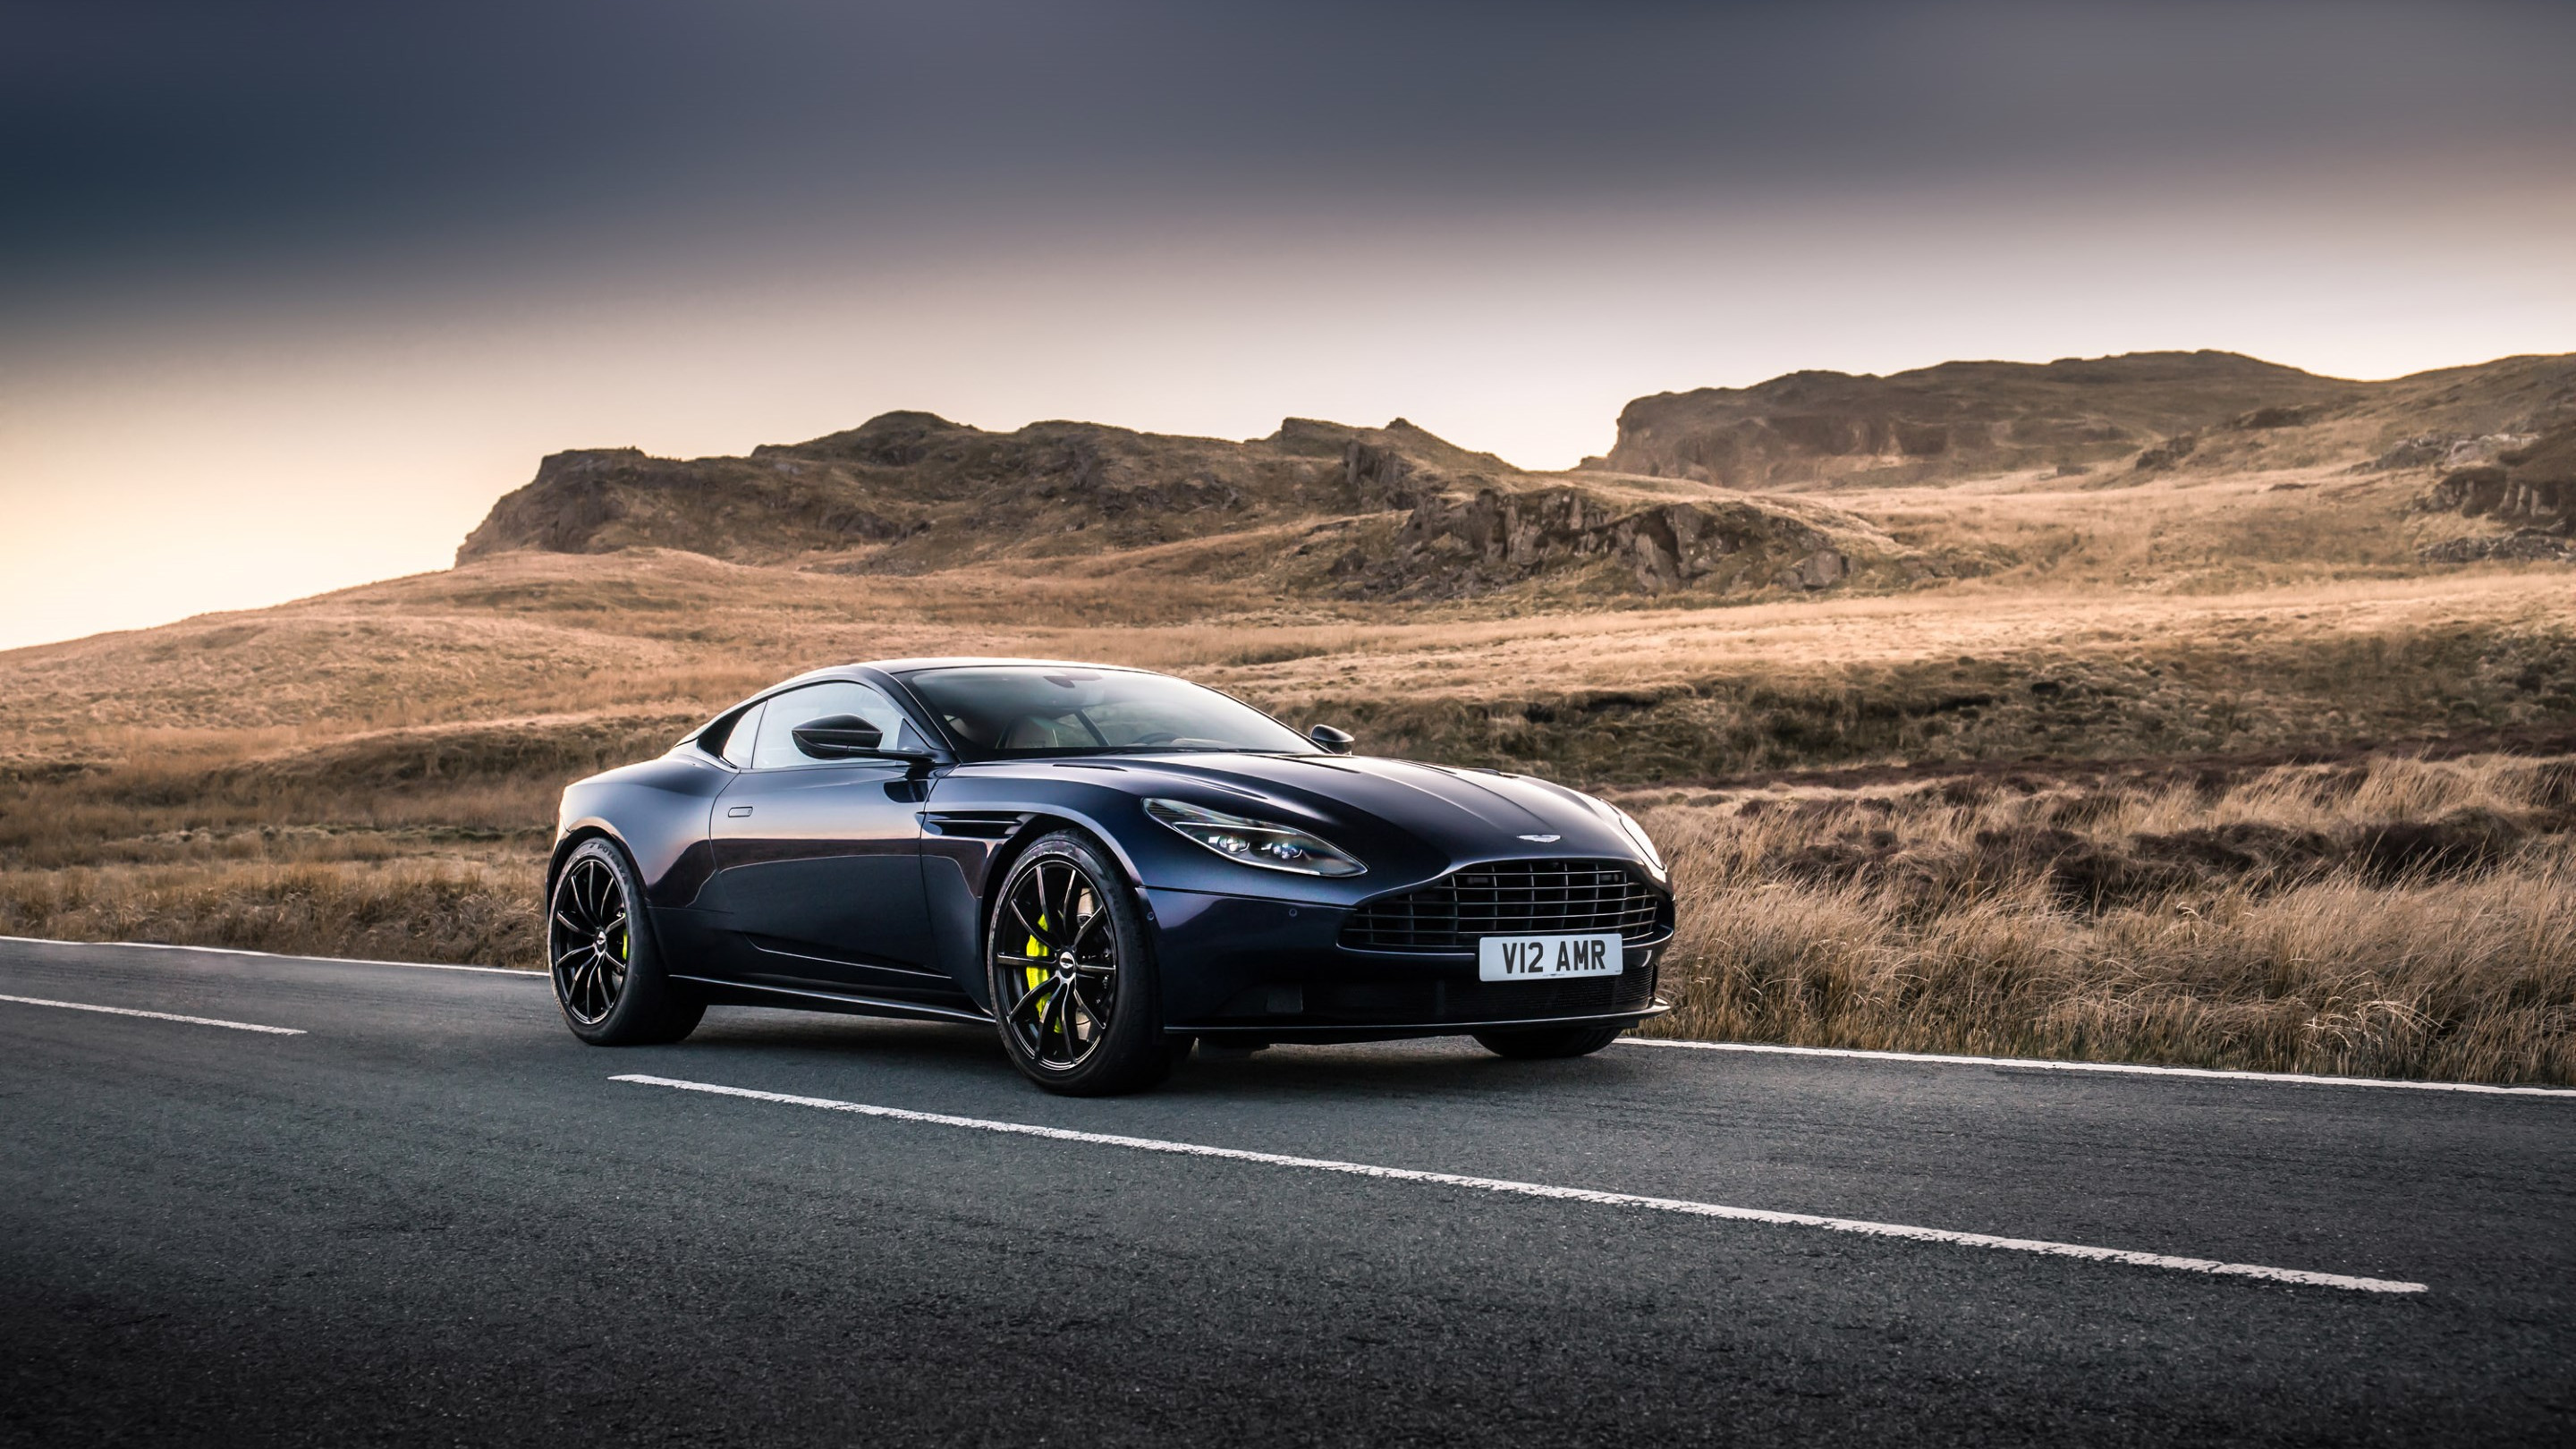 Aston Martin DB11 AMR wallpaper 2880x1620